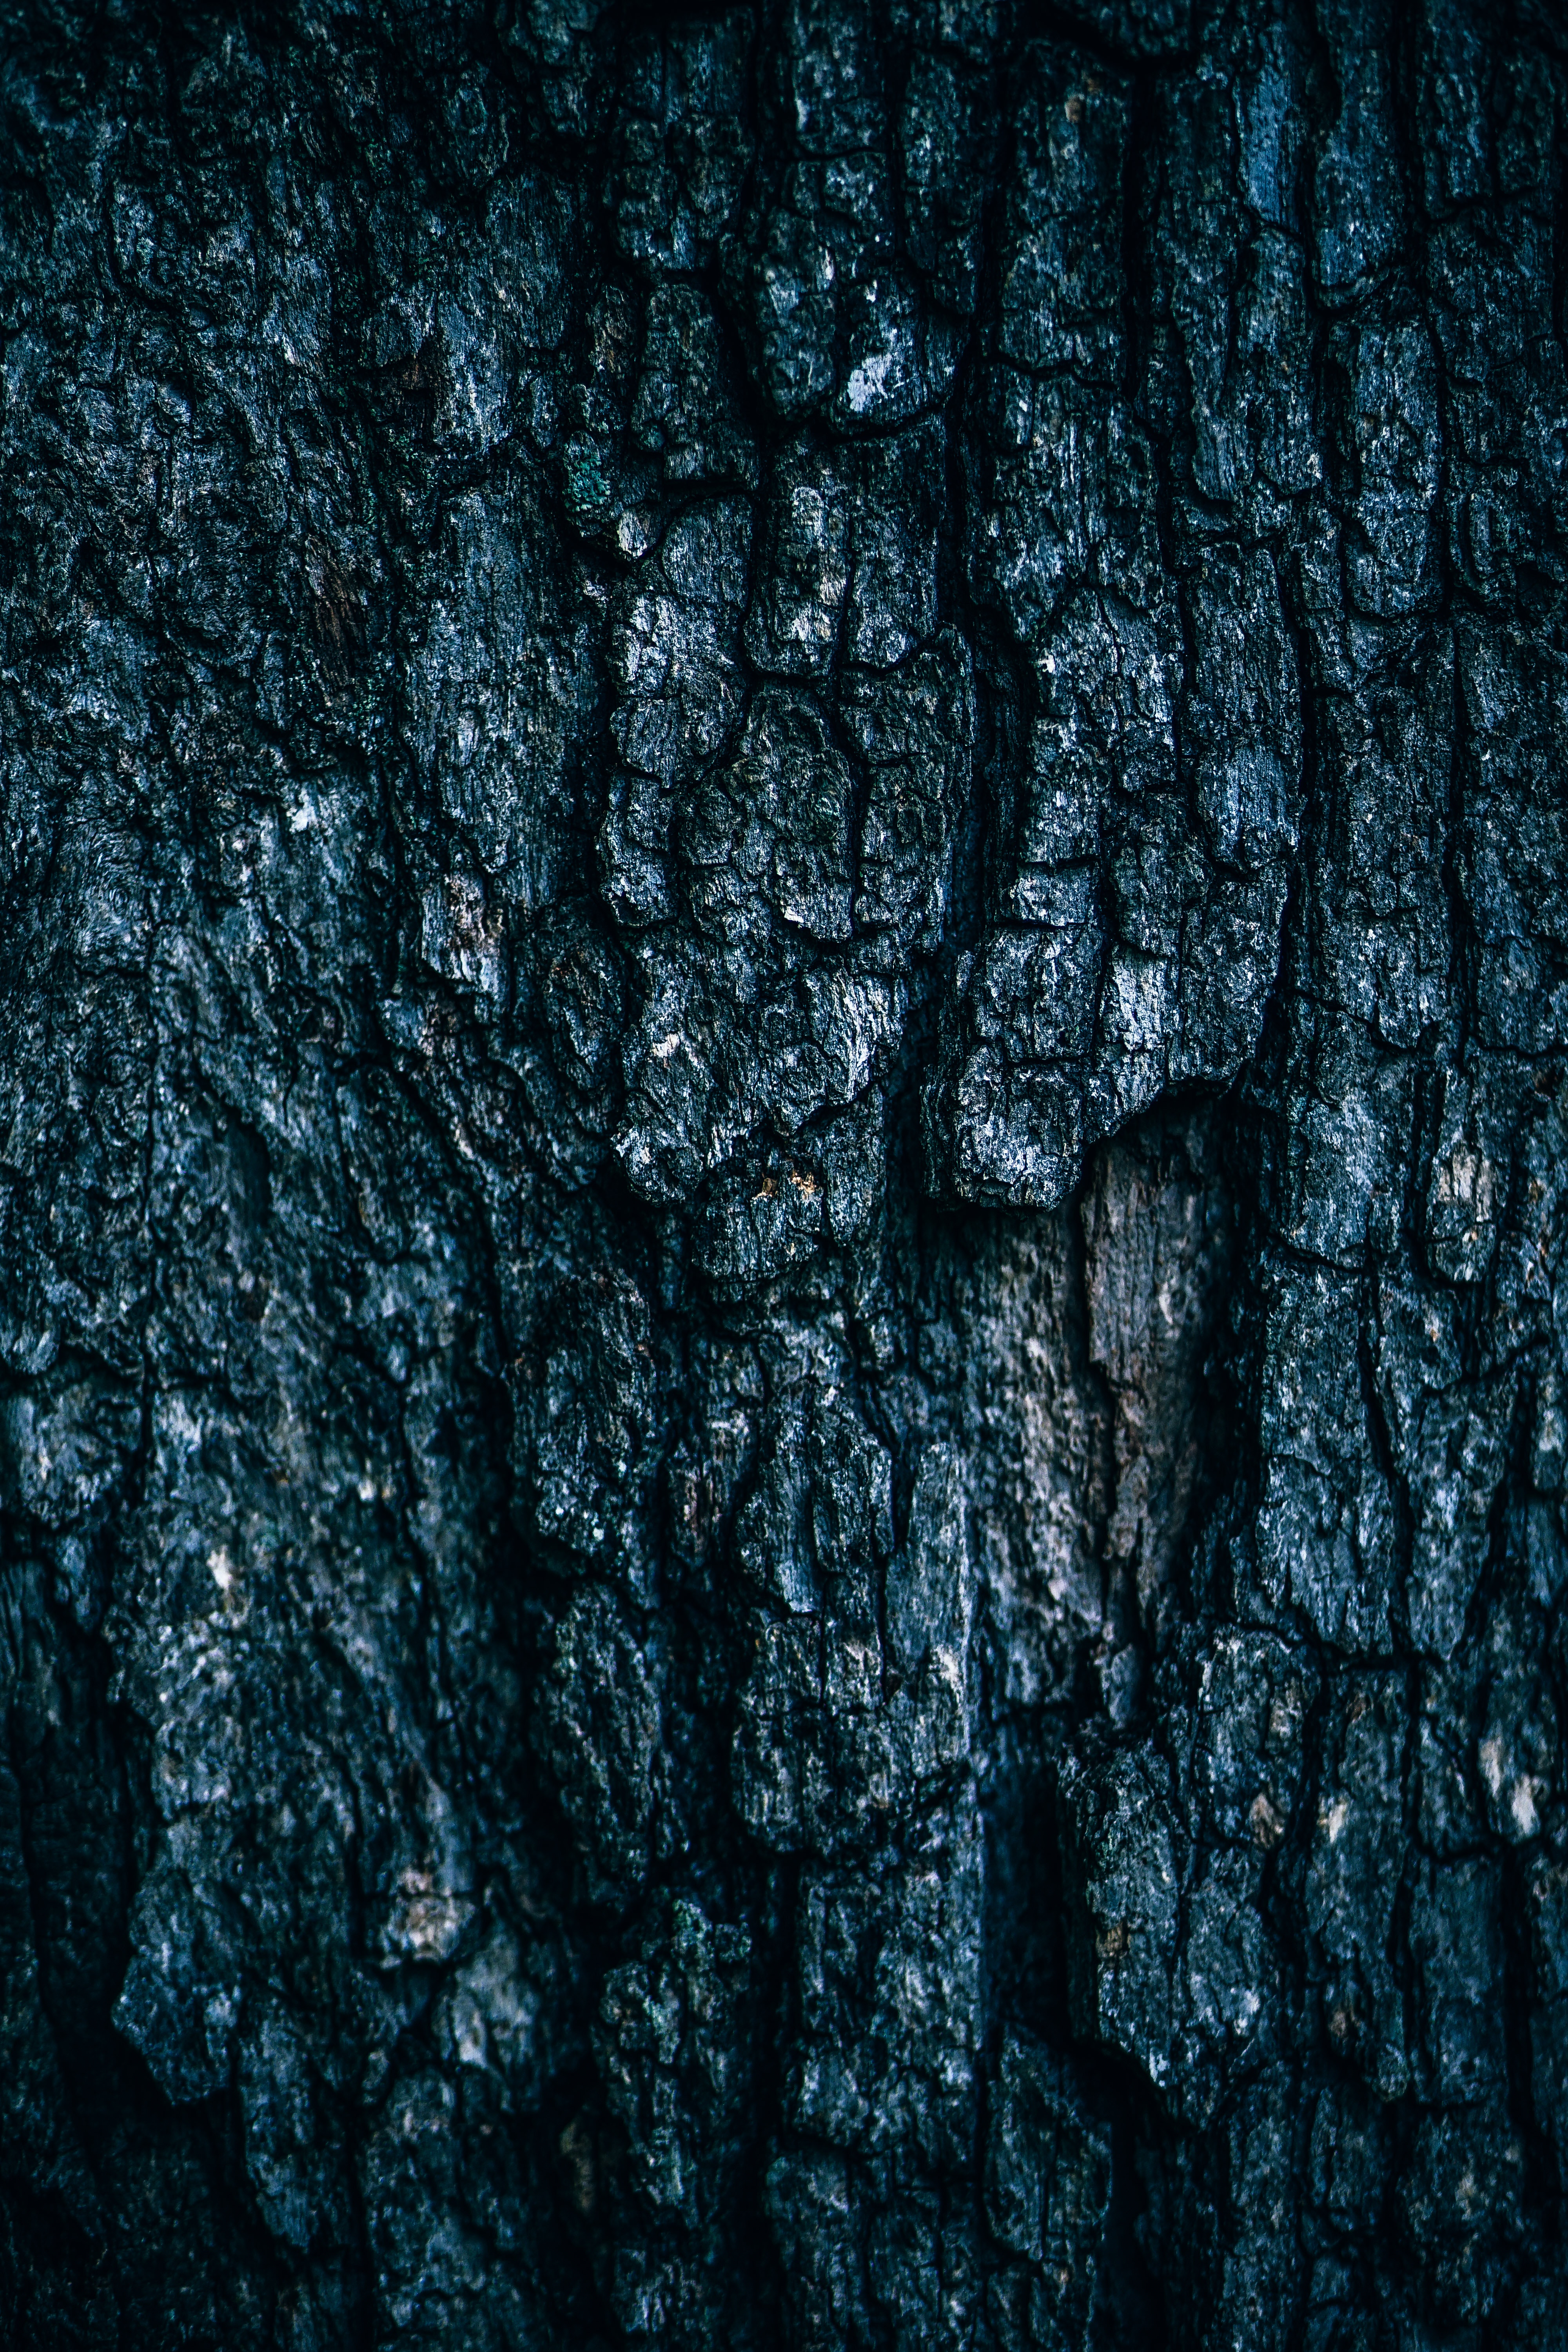 A close-up of tree bark texture.